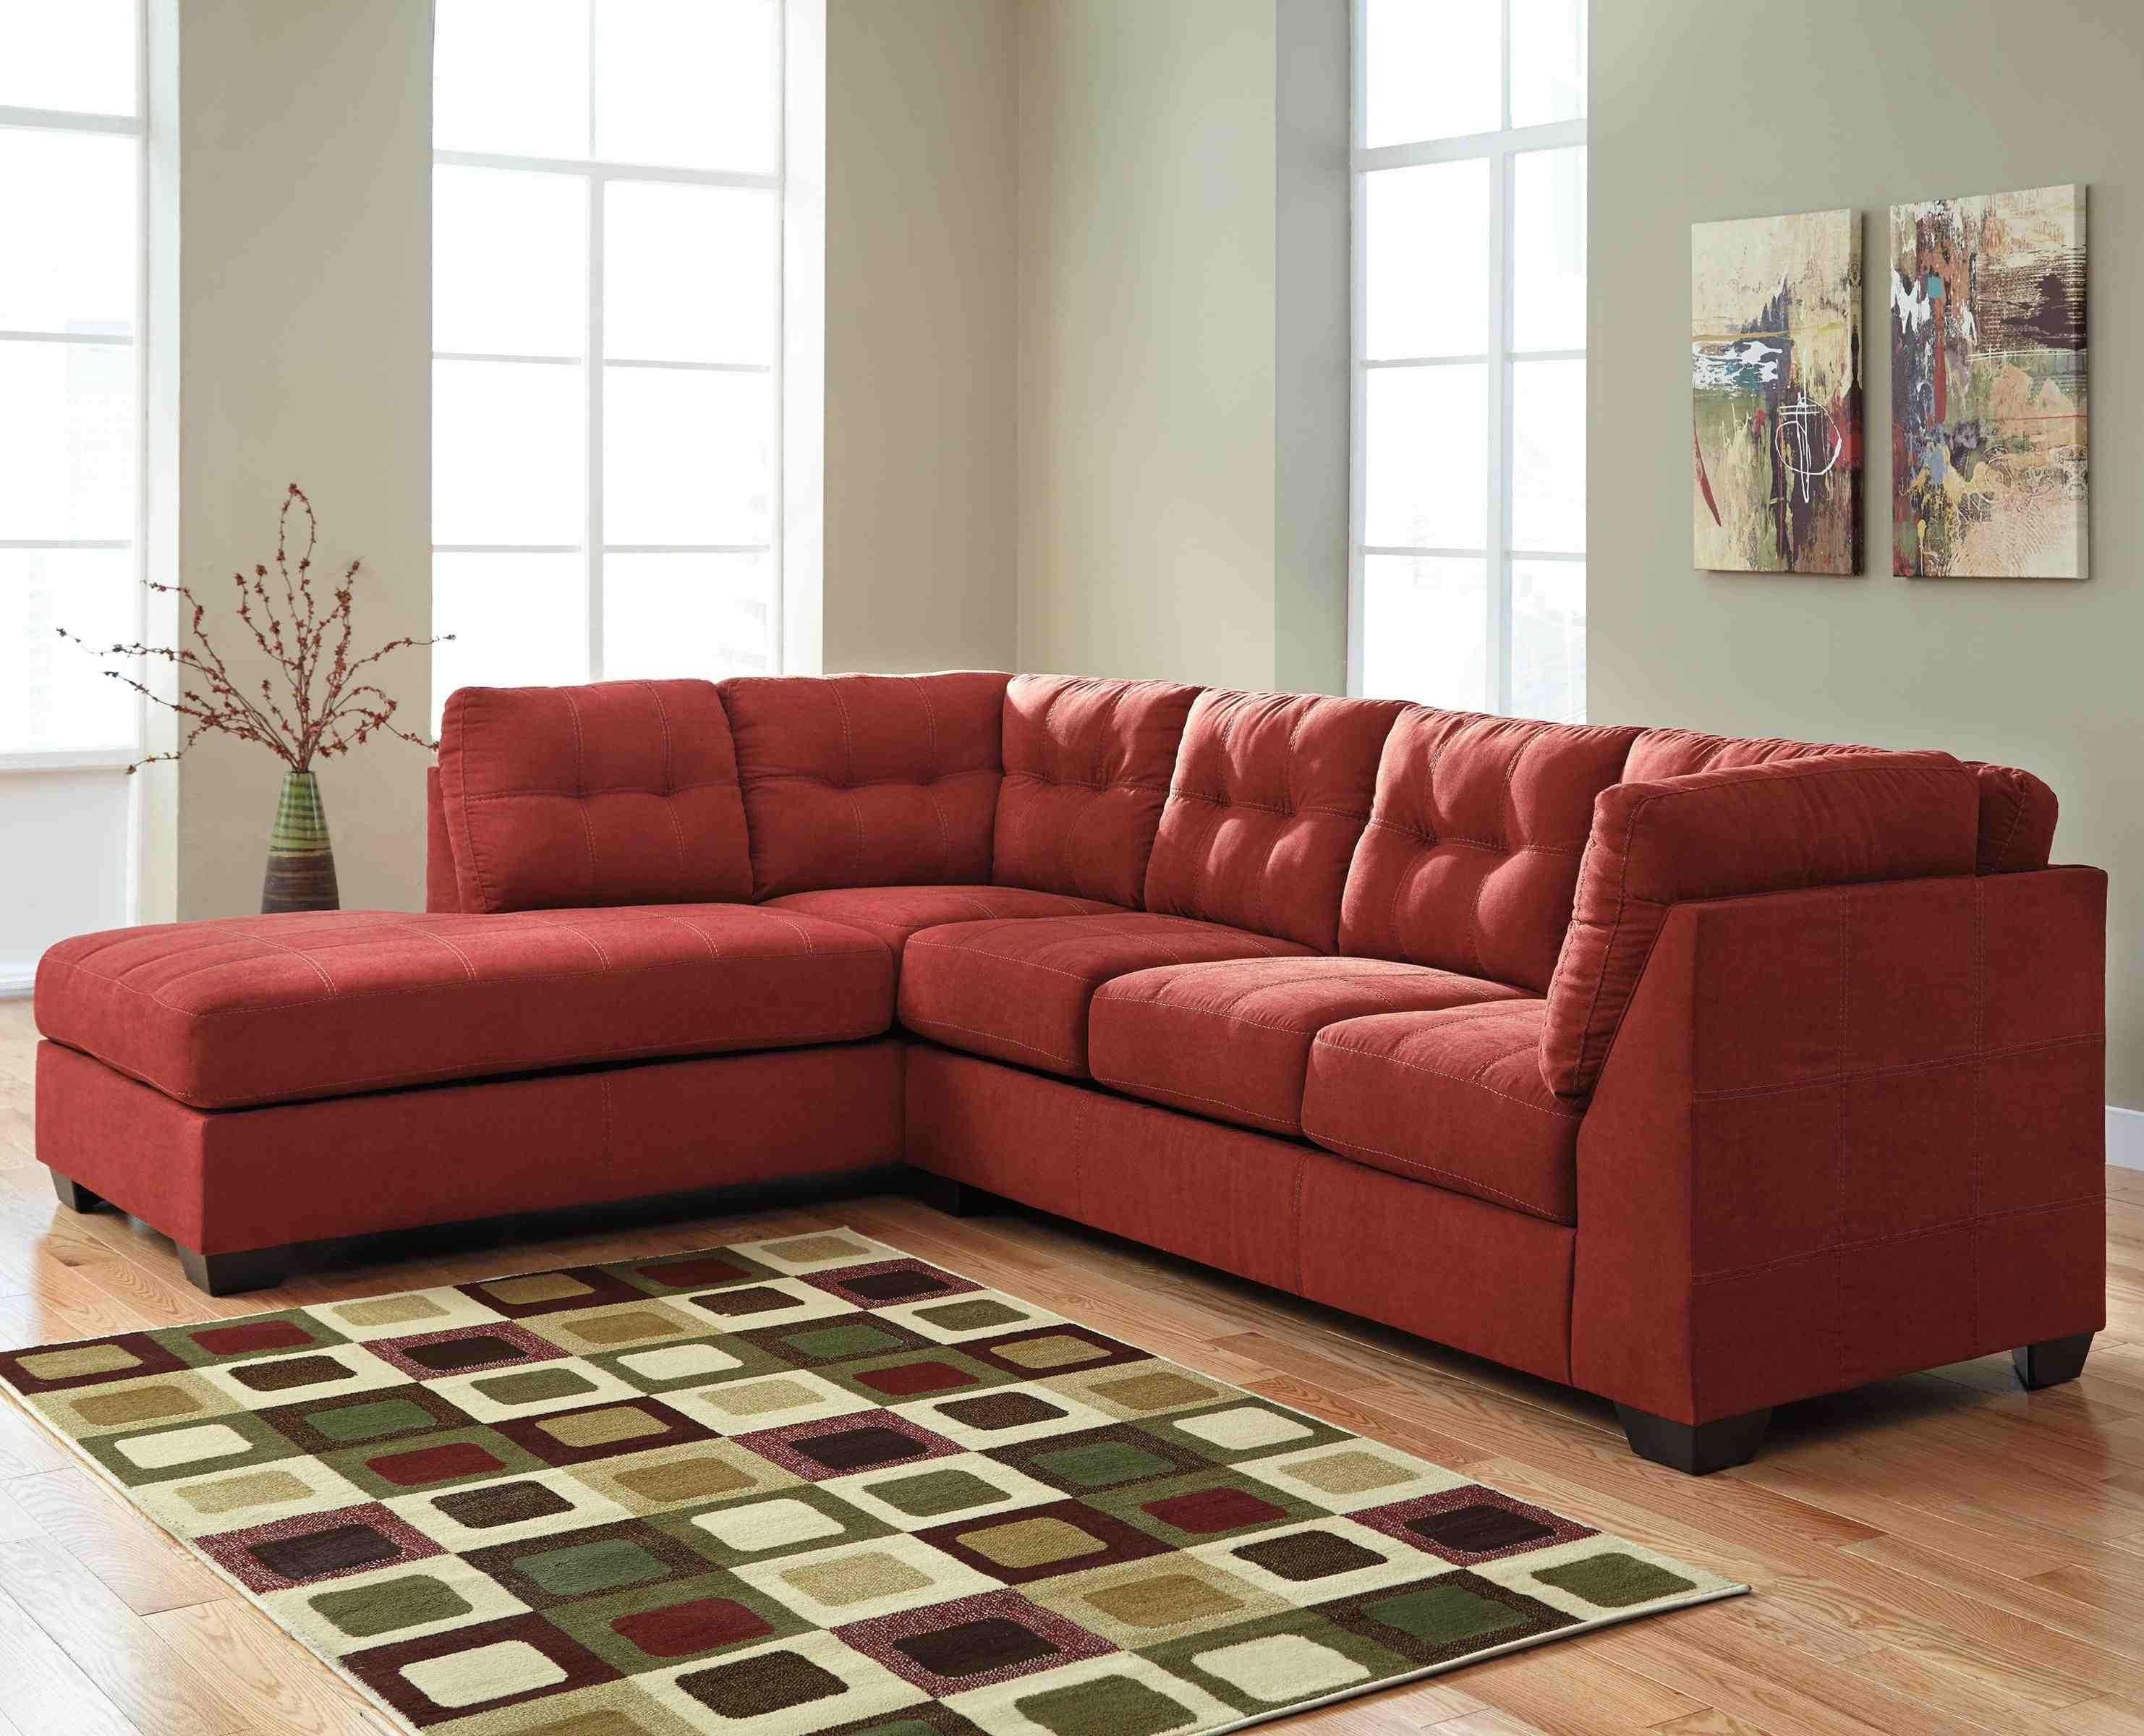 Microfiberctional Sofa With Chaise Amazing Photo Inspirations with Arrowmask 2 Piece Sectionals With Raf Chaise (Image 26 of 30)